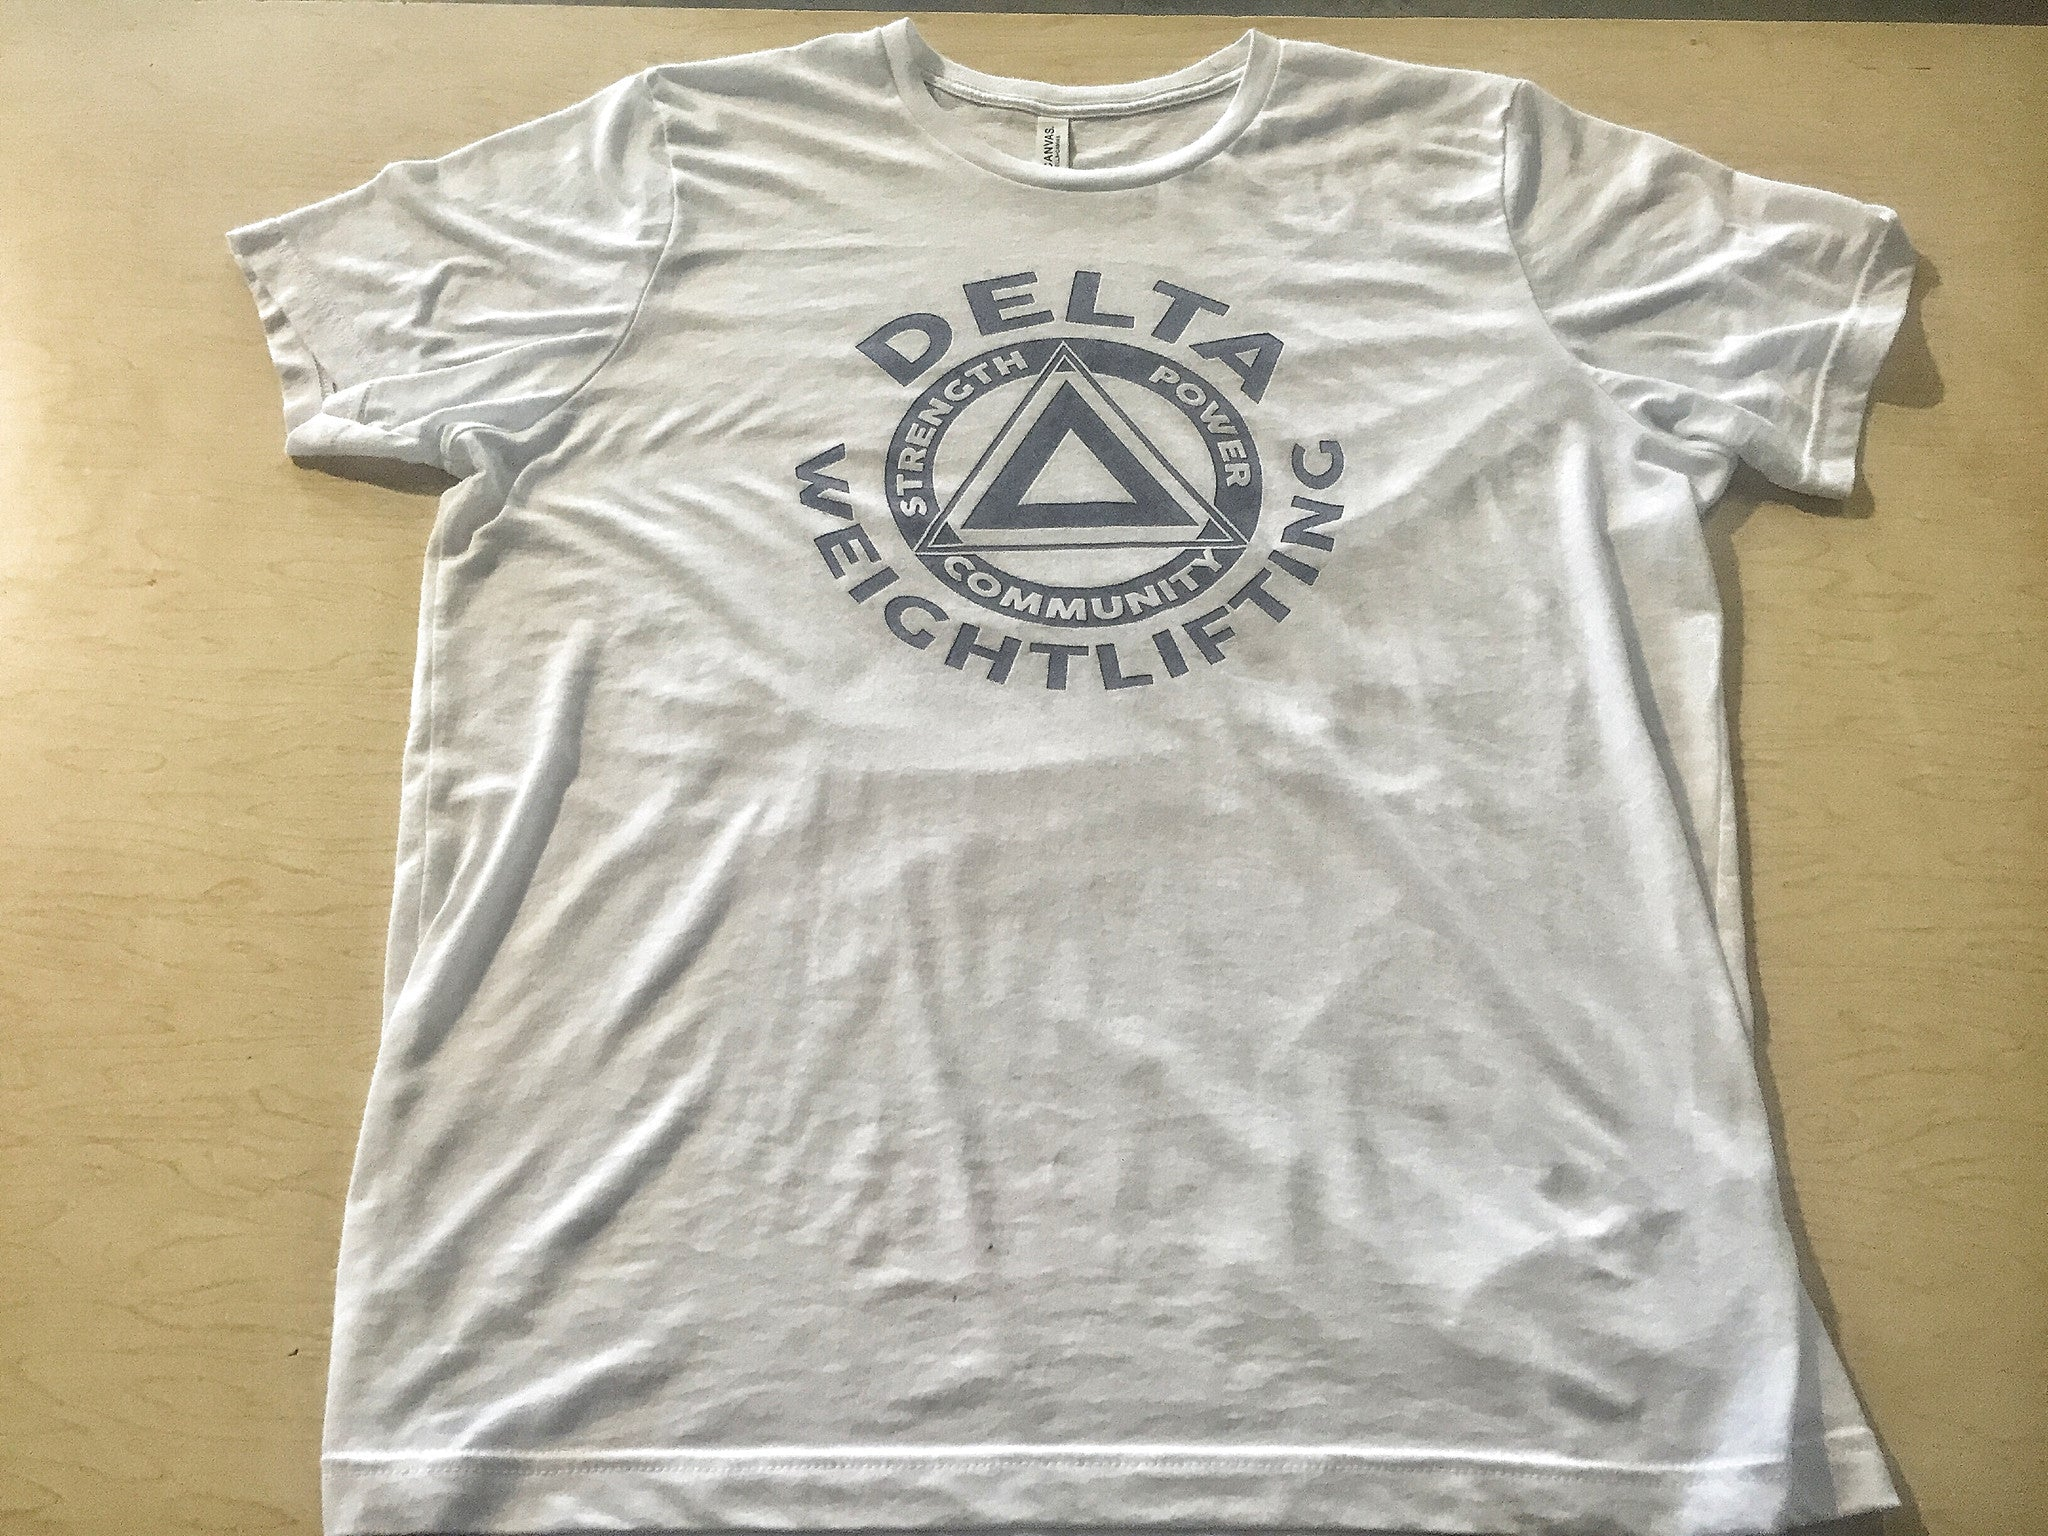 DELTA Weightlifting Tri-Blend White Unisex Shirt